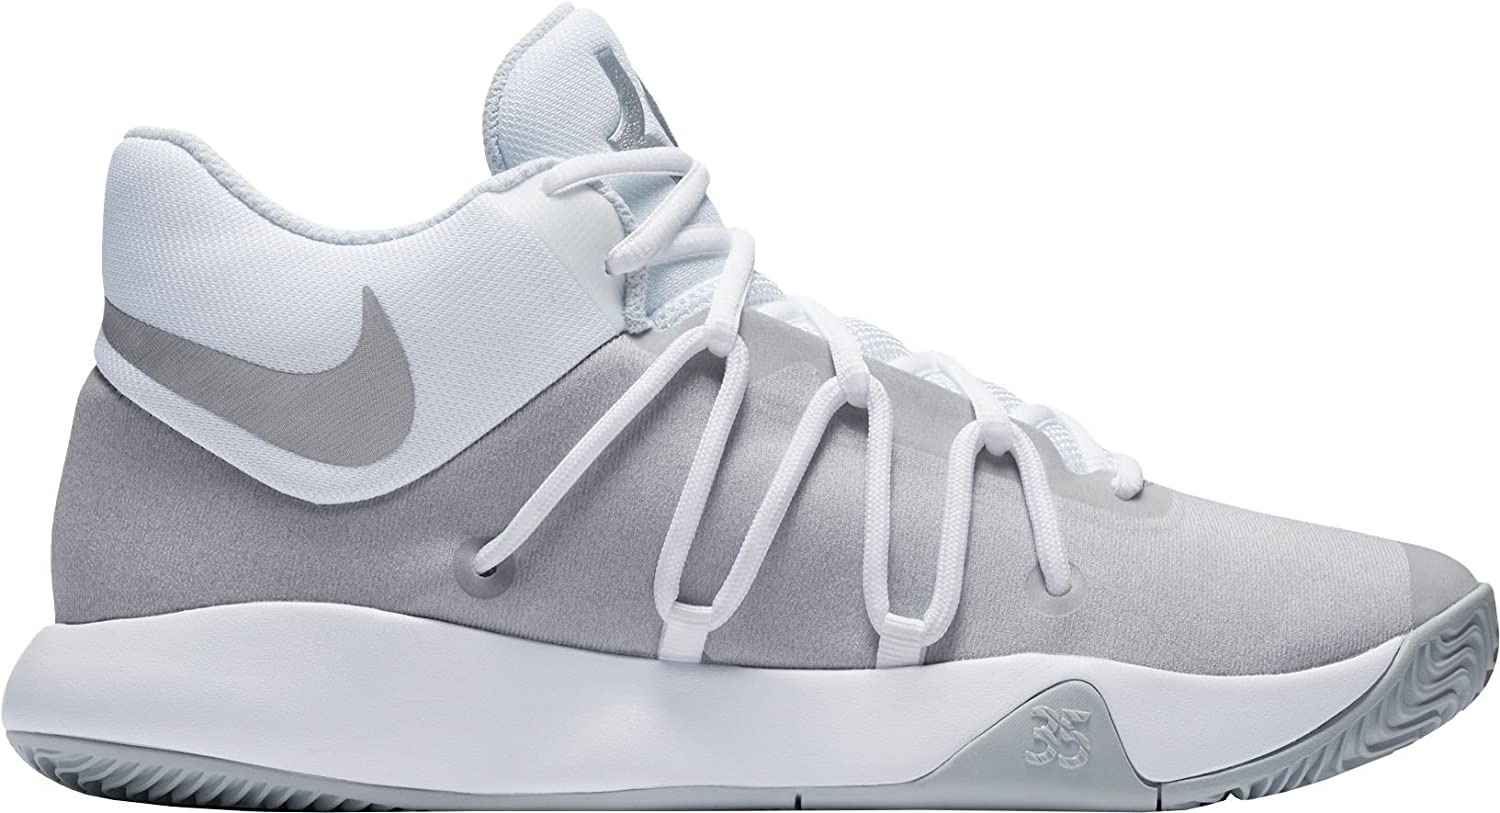 NIKE Men's KD Trey 5 V Basketball Shoes B01N0RERY9 14 M US|White/Grey